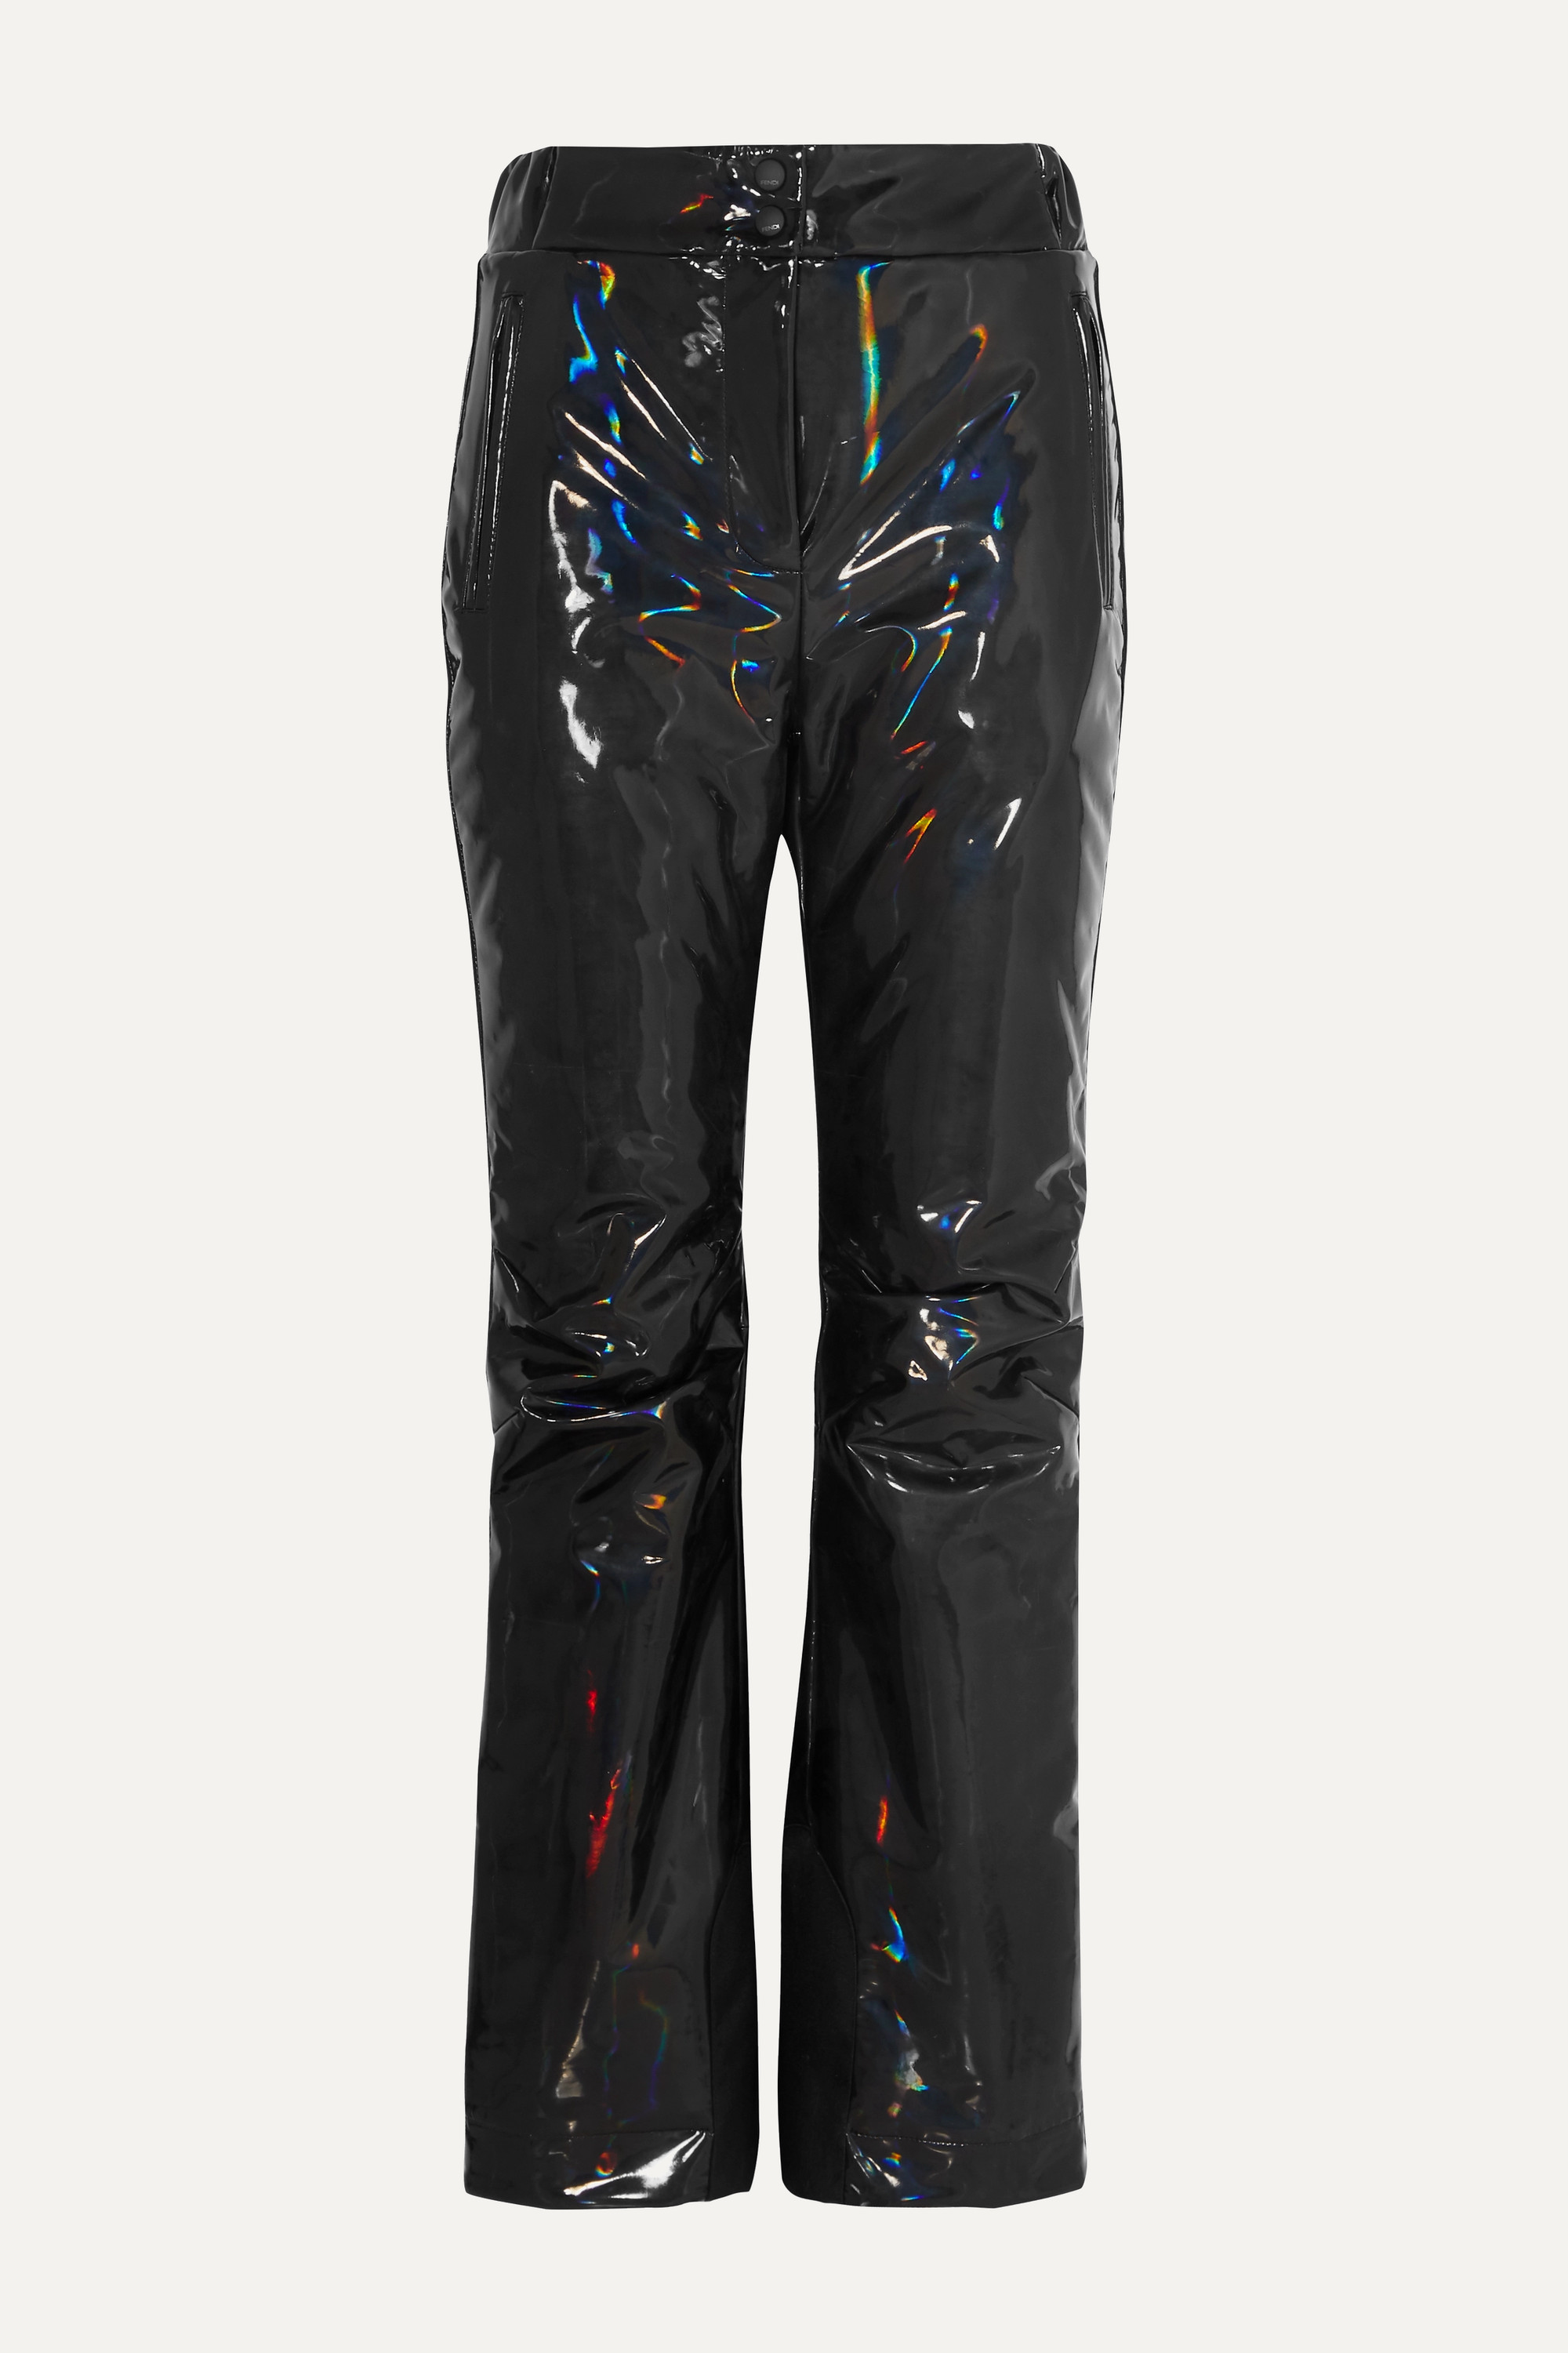 Fendi Appliquéd holographic padded ski pants